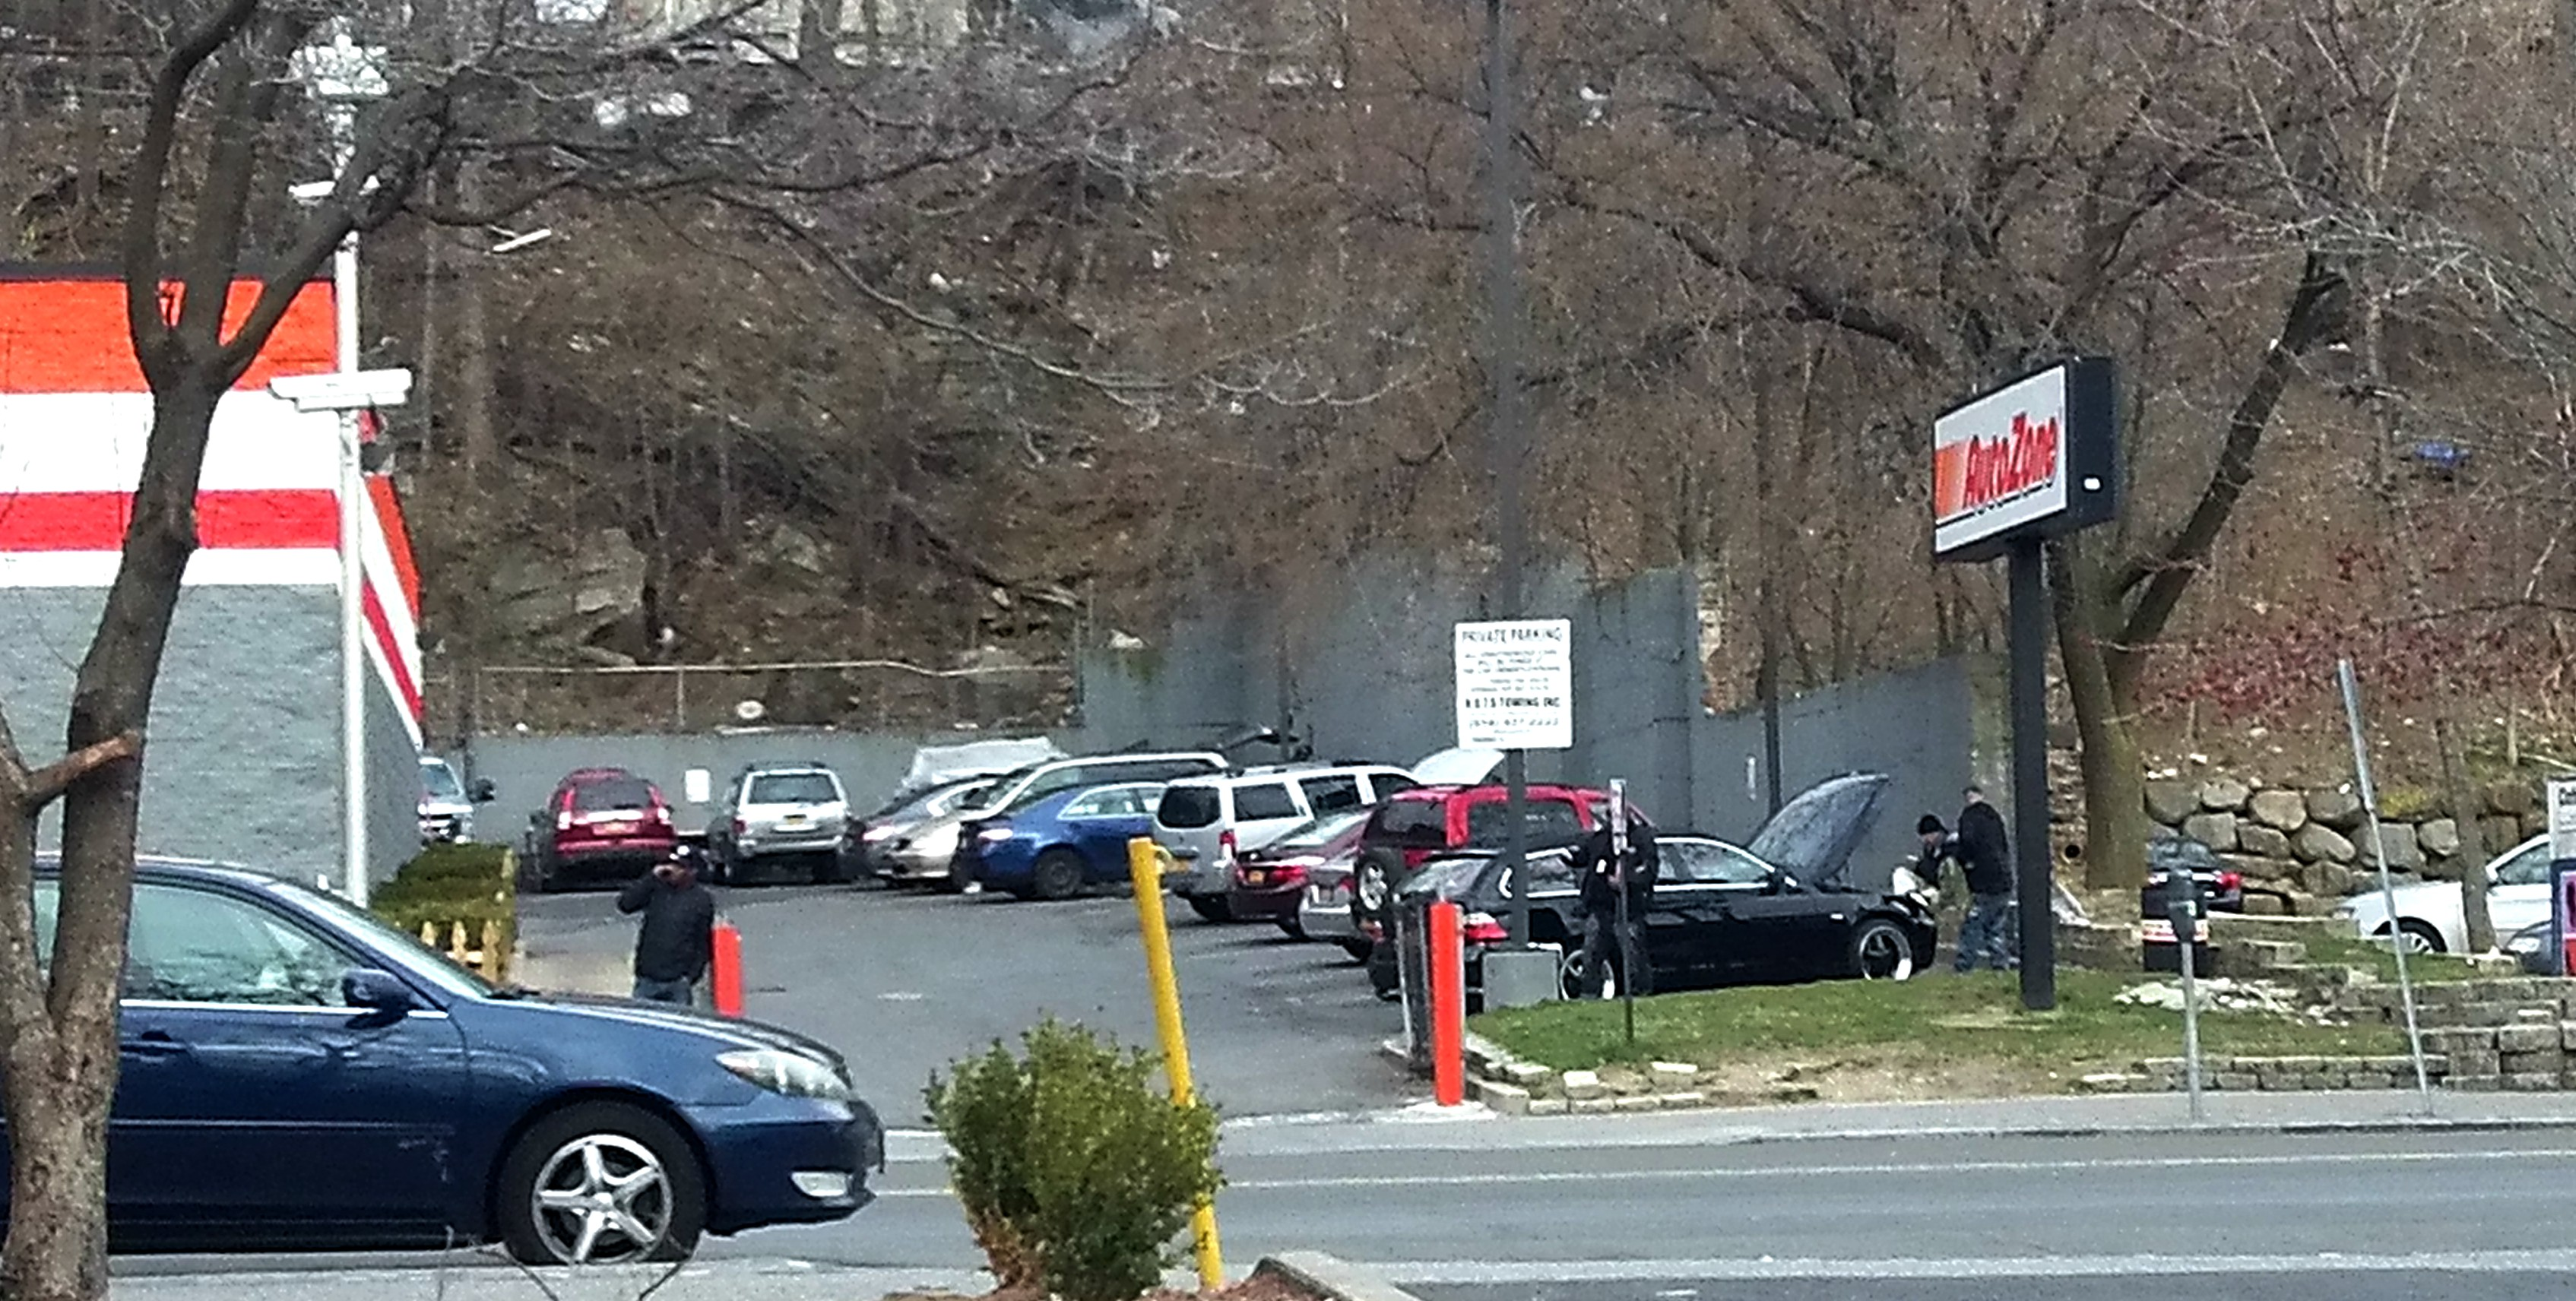 Yonkers Autozone Be es Unauthorized Repair Shop Again